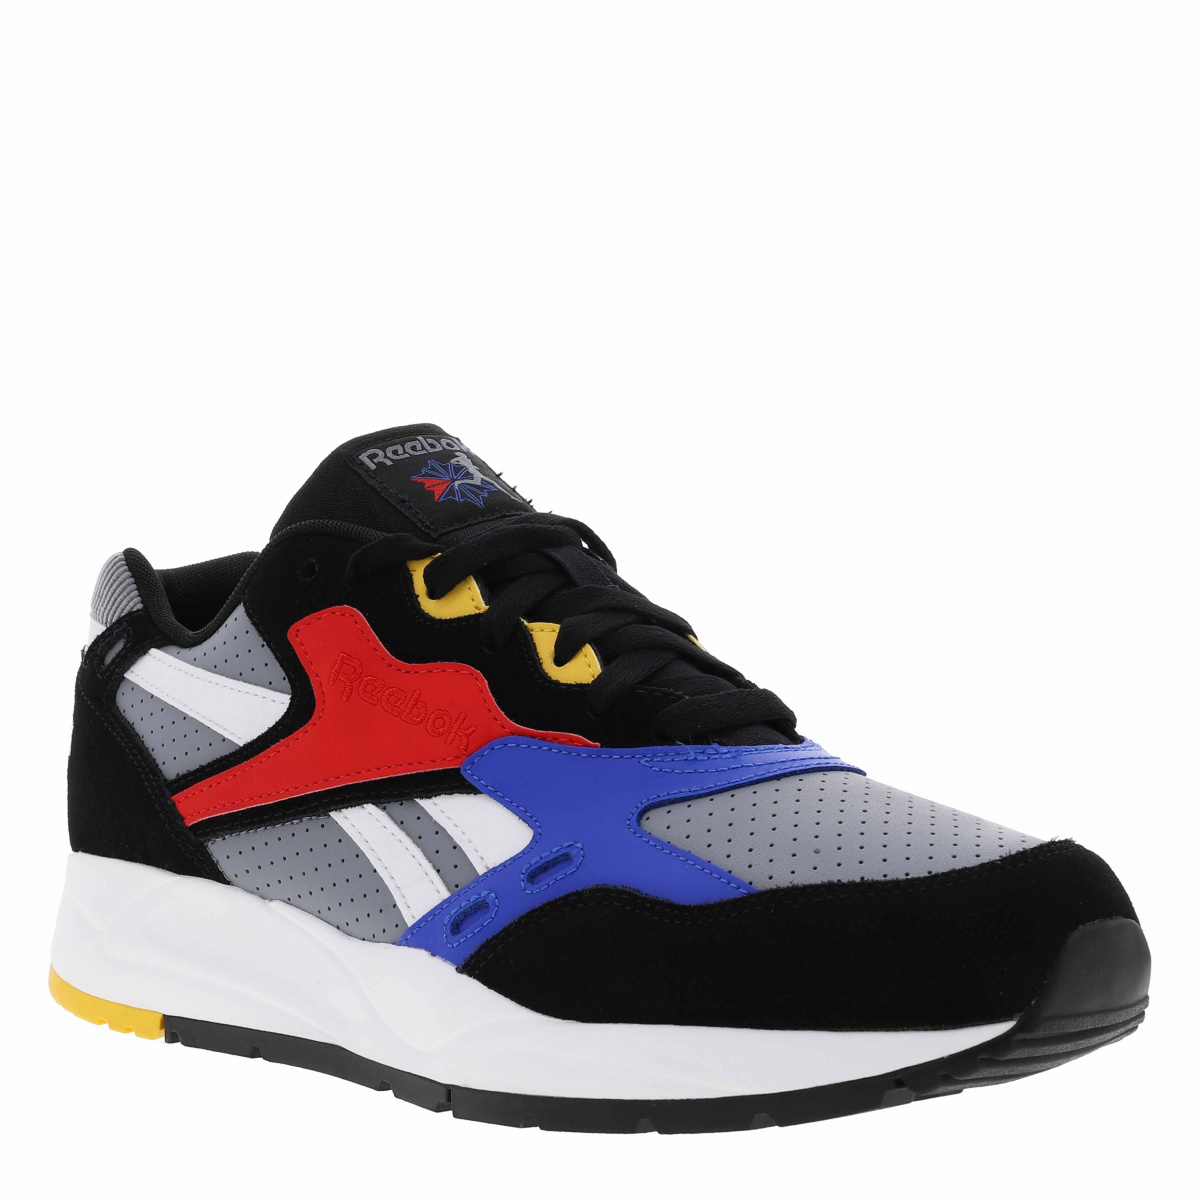 baskets reebok reebok reebok baskets baskets multicolore multicolore PXwOk0N8n